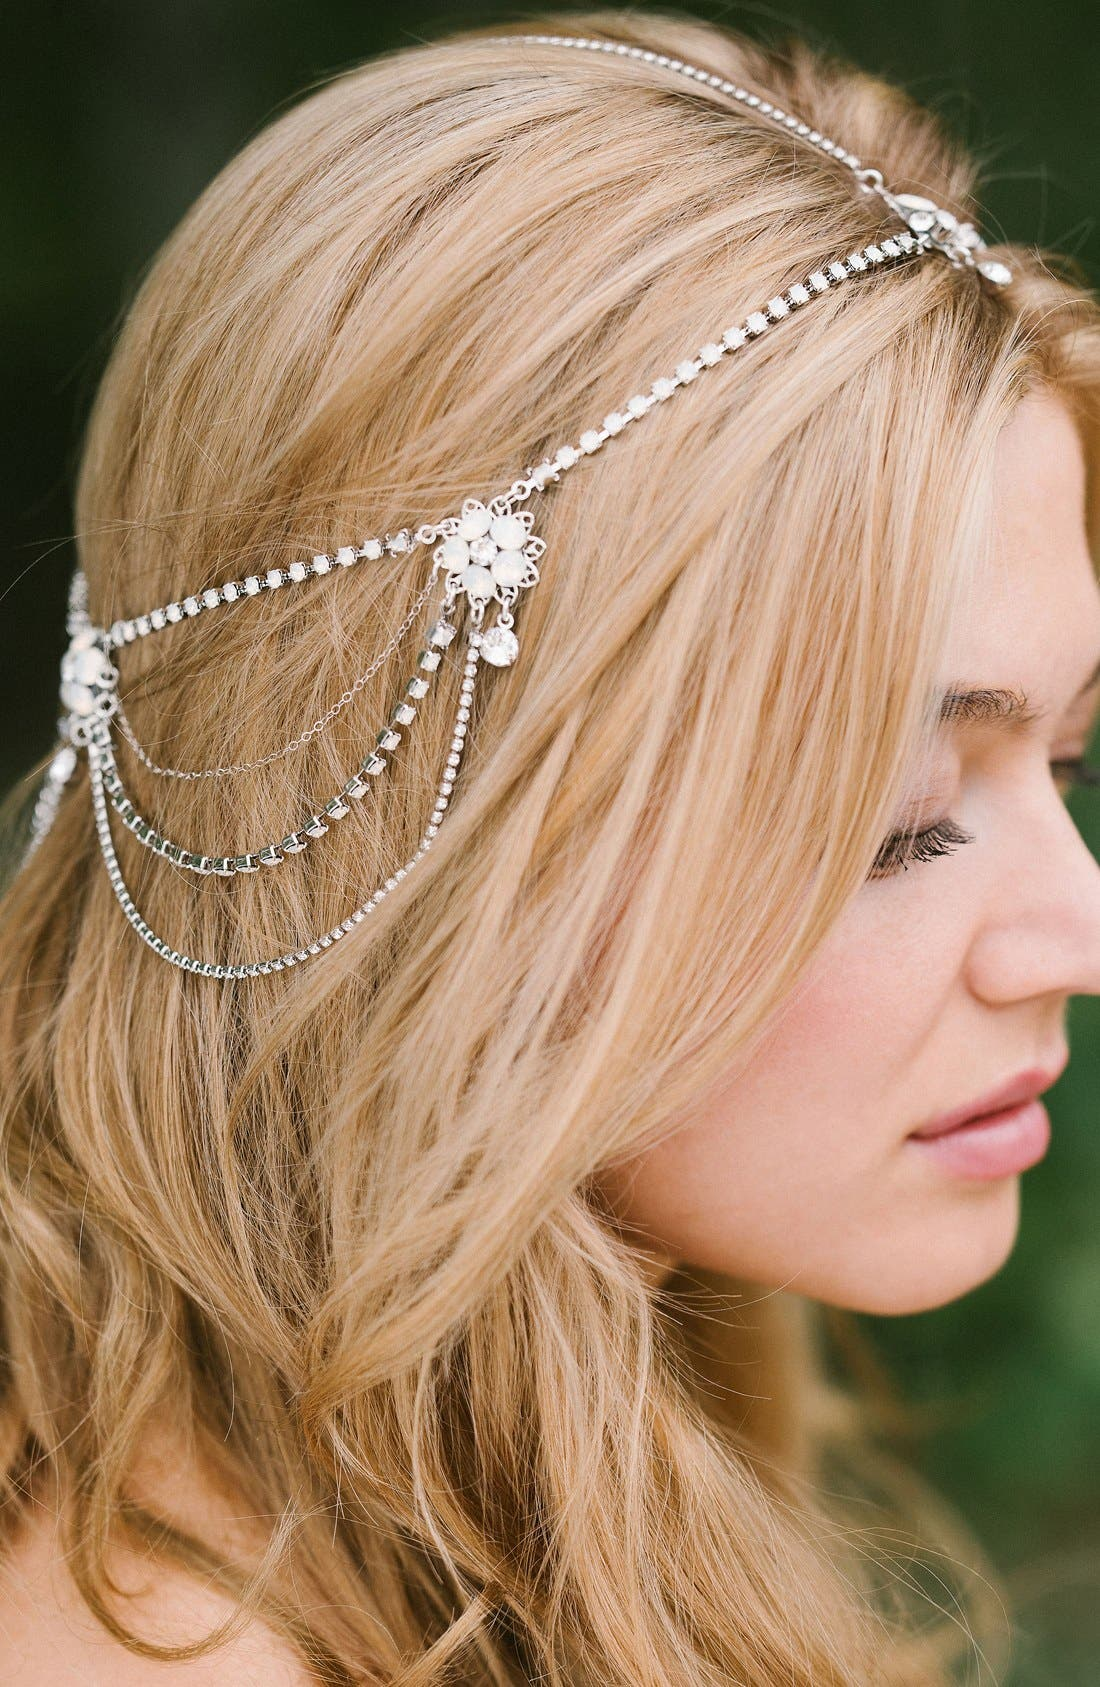 'Madeline' Floral Crystal Hair Chain,                             Main thumbnail 1, color,                             Crystal/ White Opal